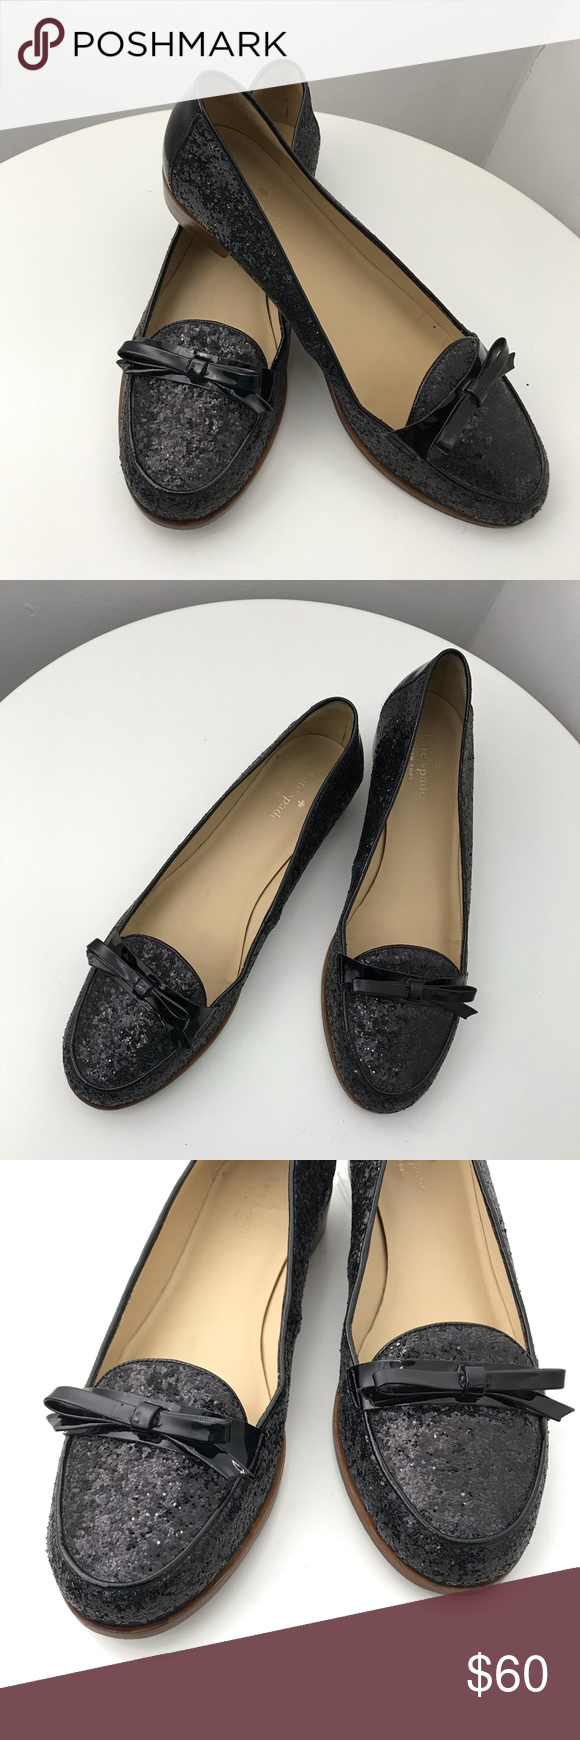 955ea8a36b45 KATE SPADE Cora black glitter loafers 9.5 Cute little party shoes!! Or wear  them